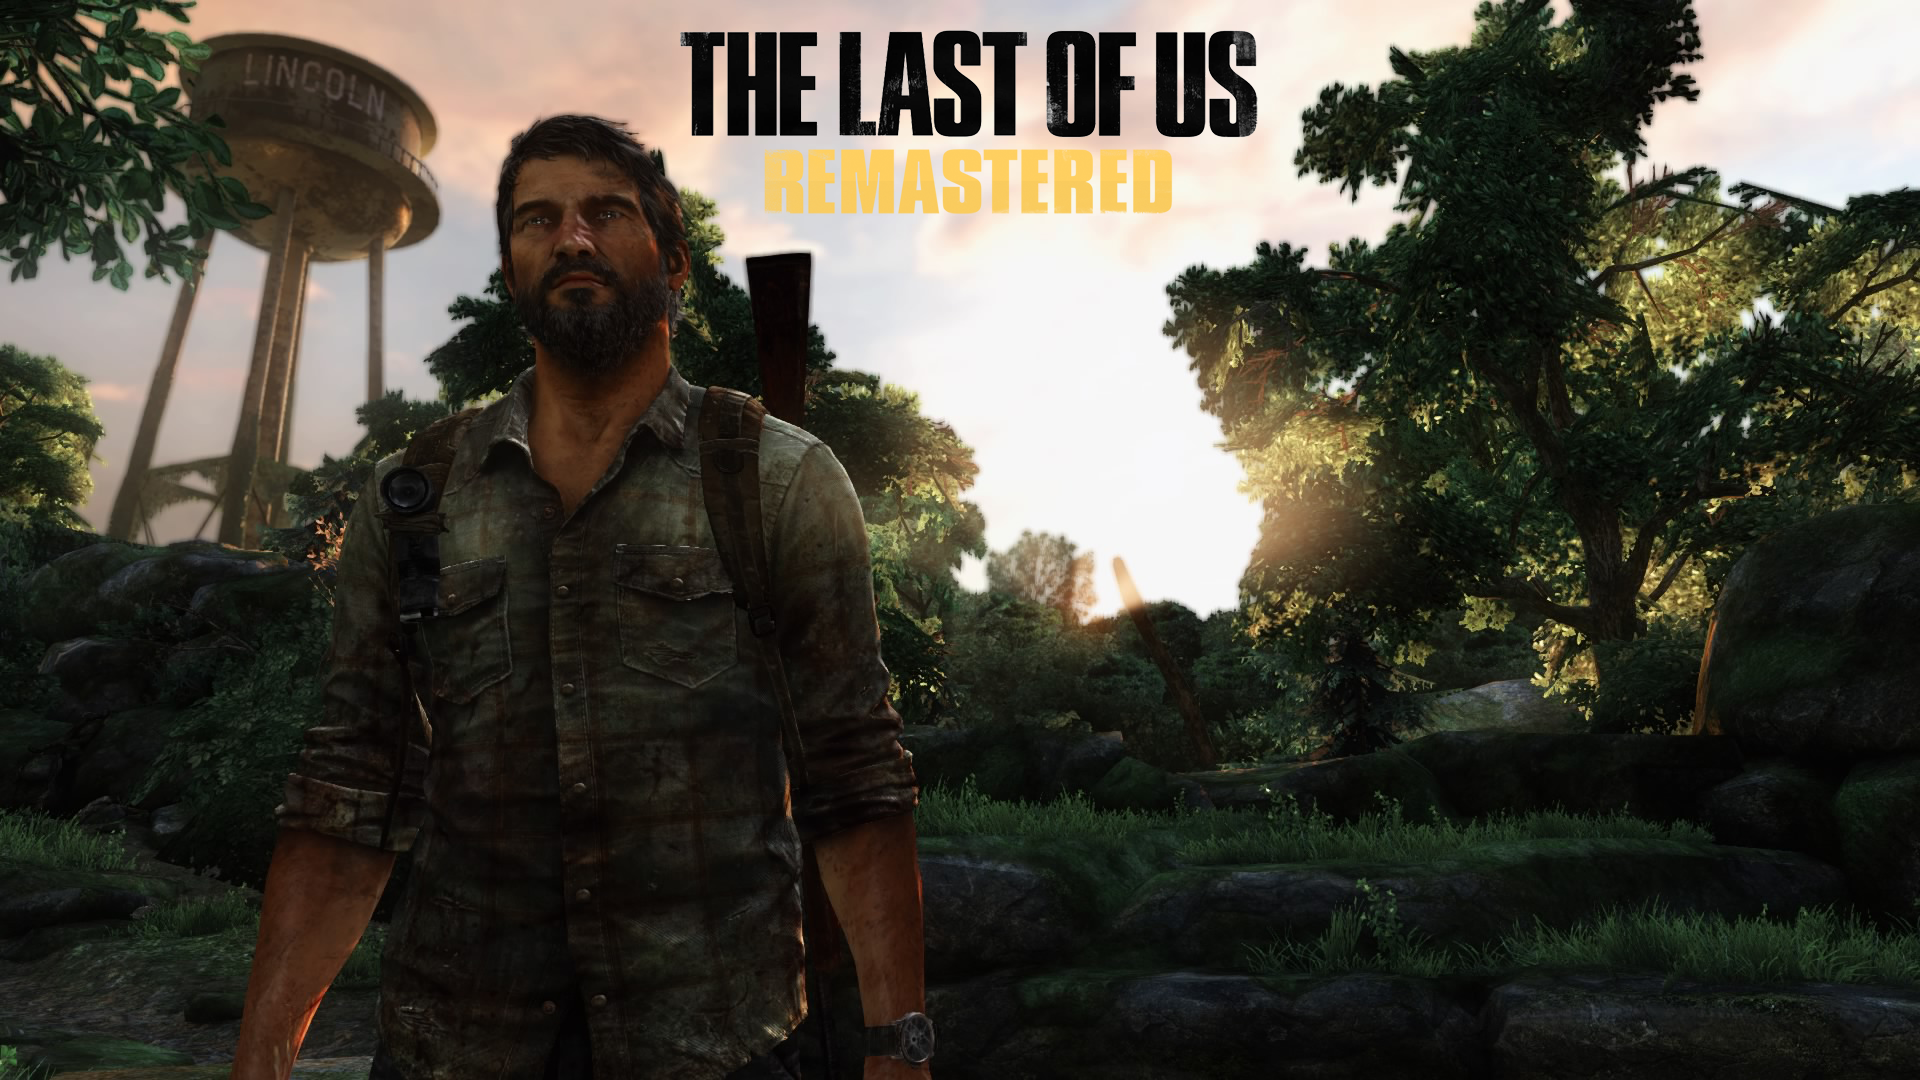 The Last Of Us Remastered Wallpaper 4 By Thesupertonza On Deviantart